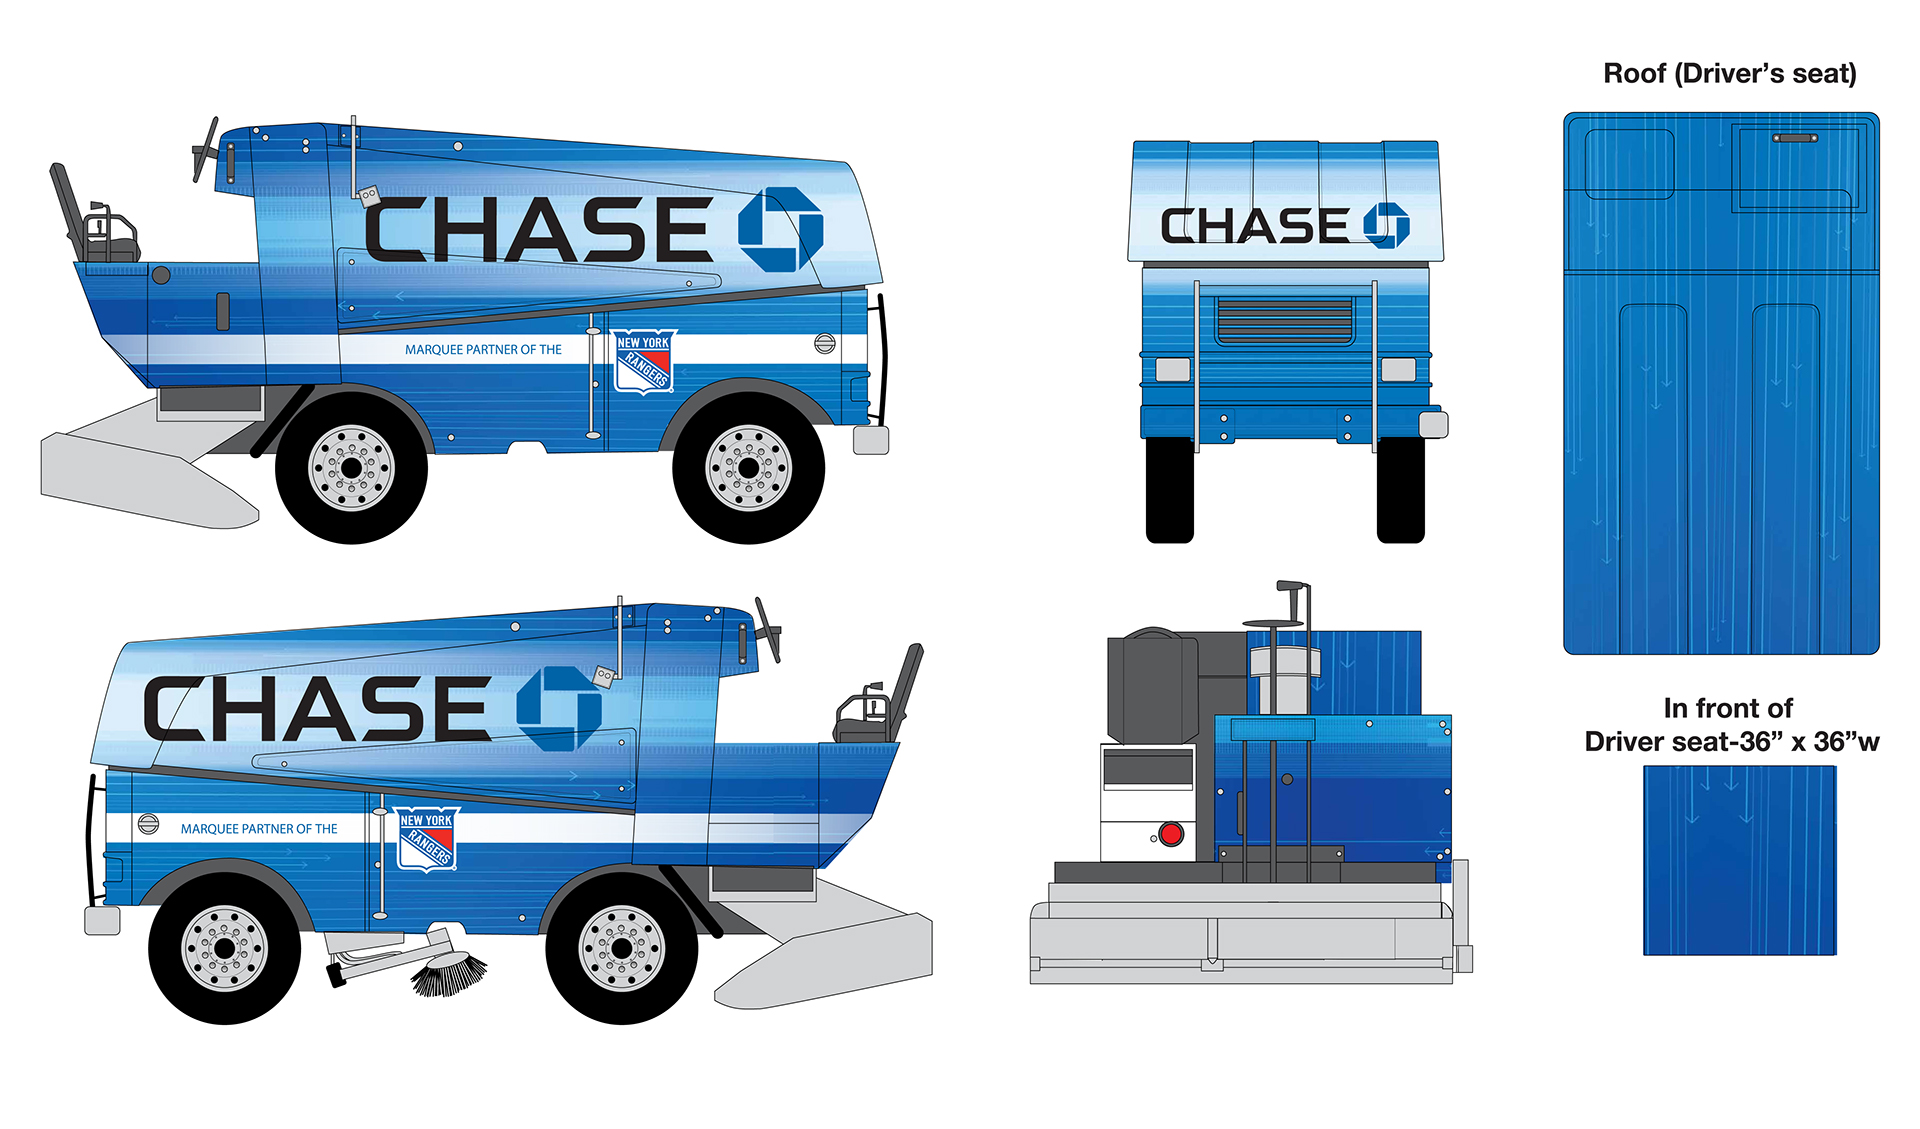 Chase bank clipart svg royalty free library Chase Bank - Elyse Myers Design svg royalty free library